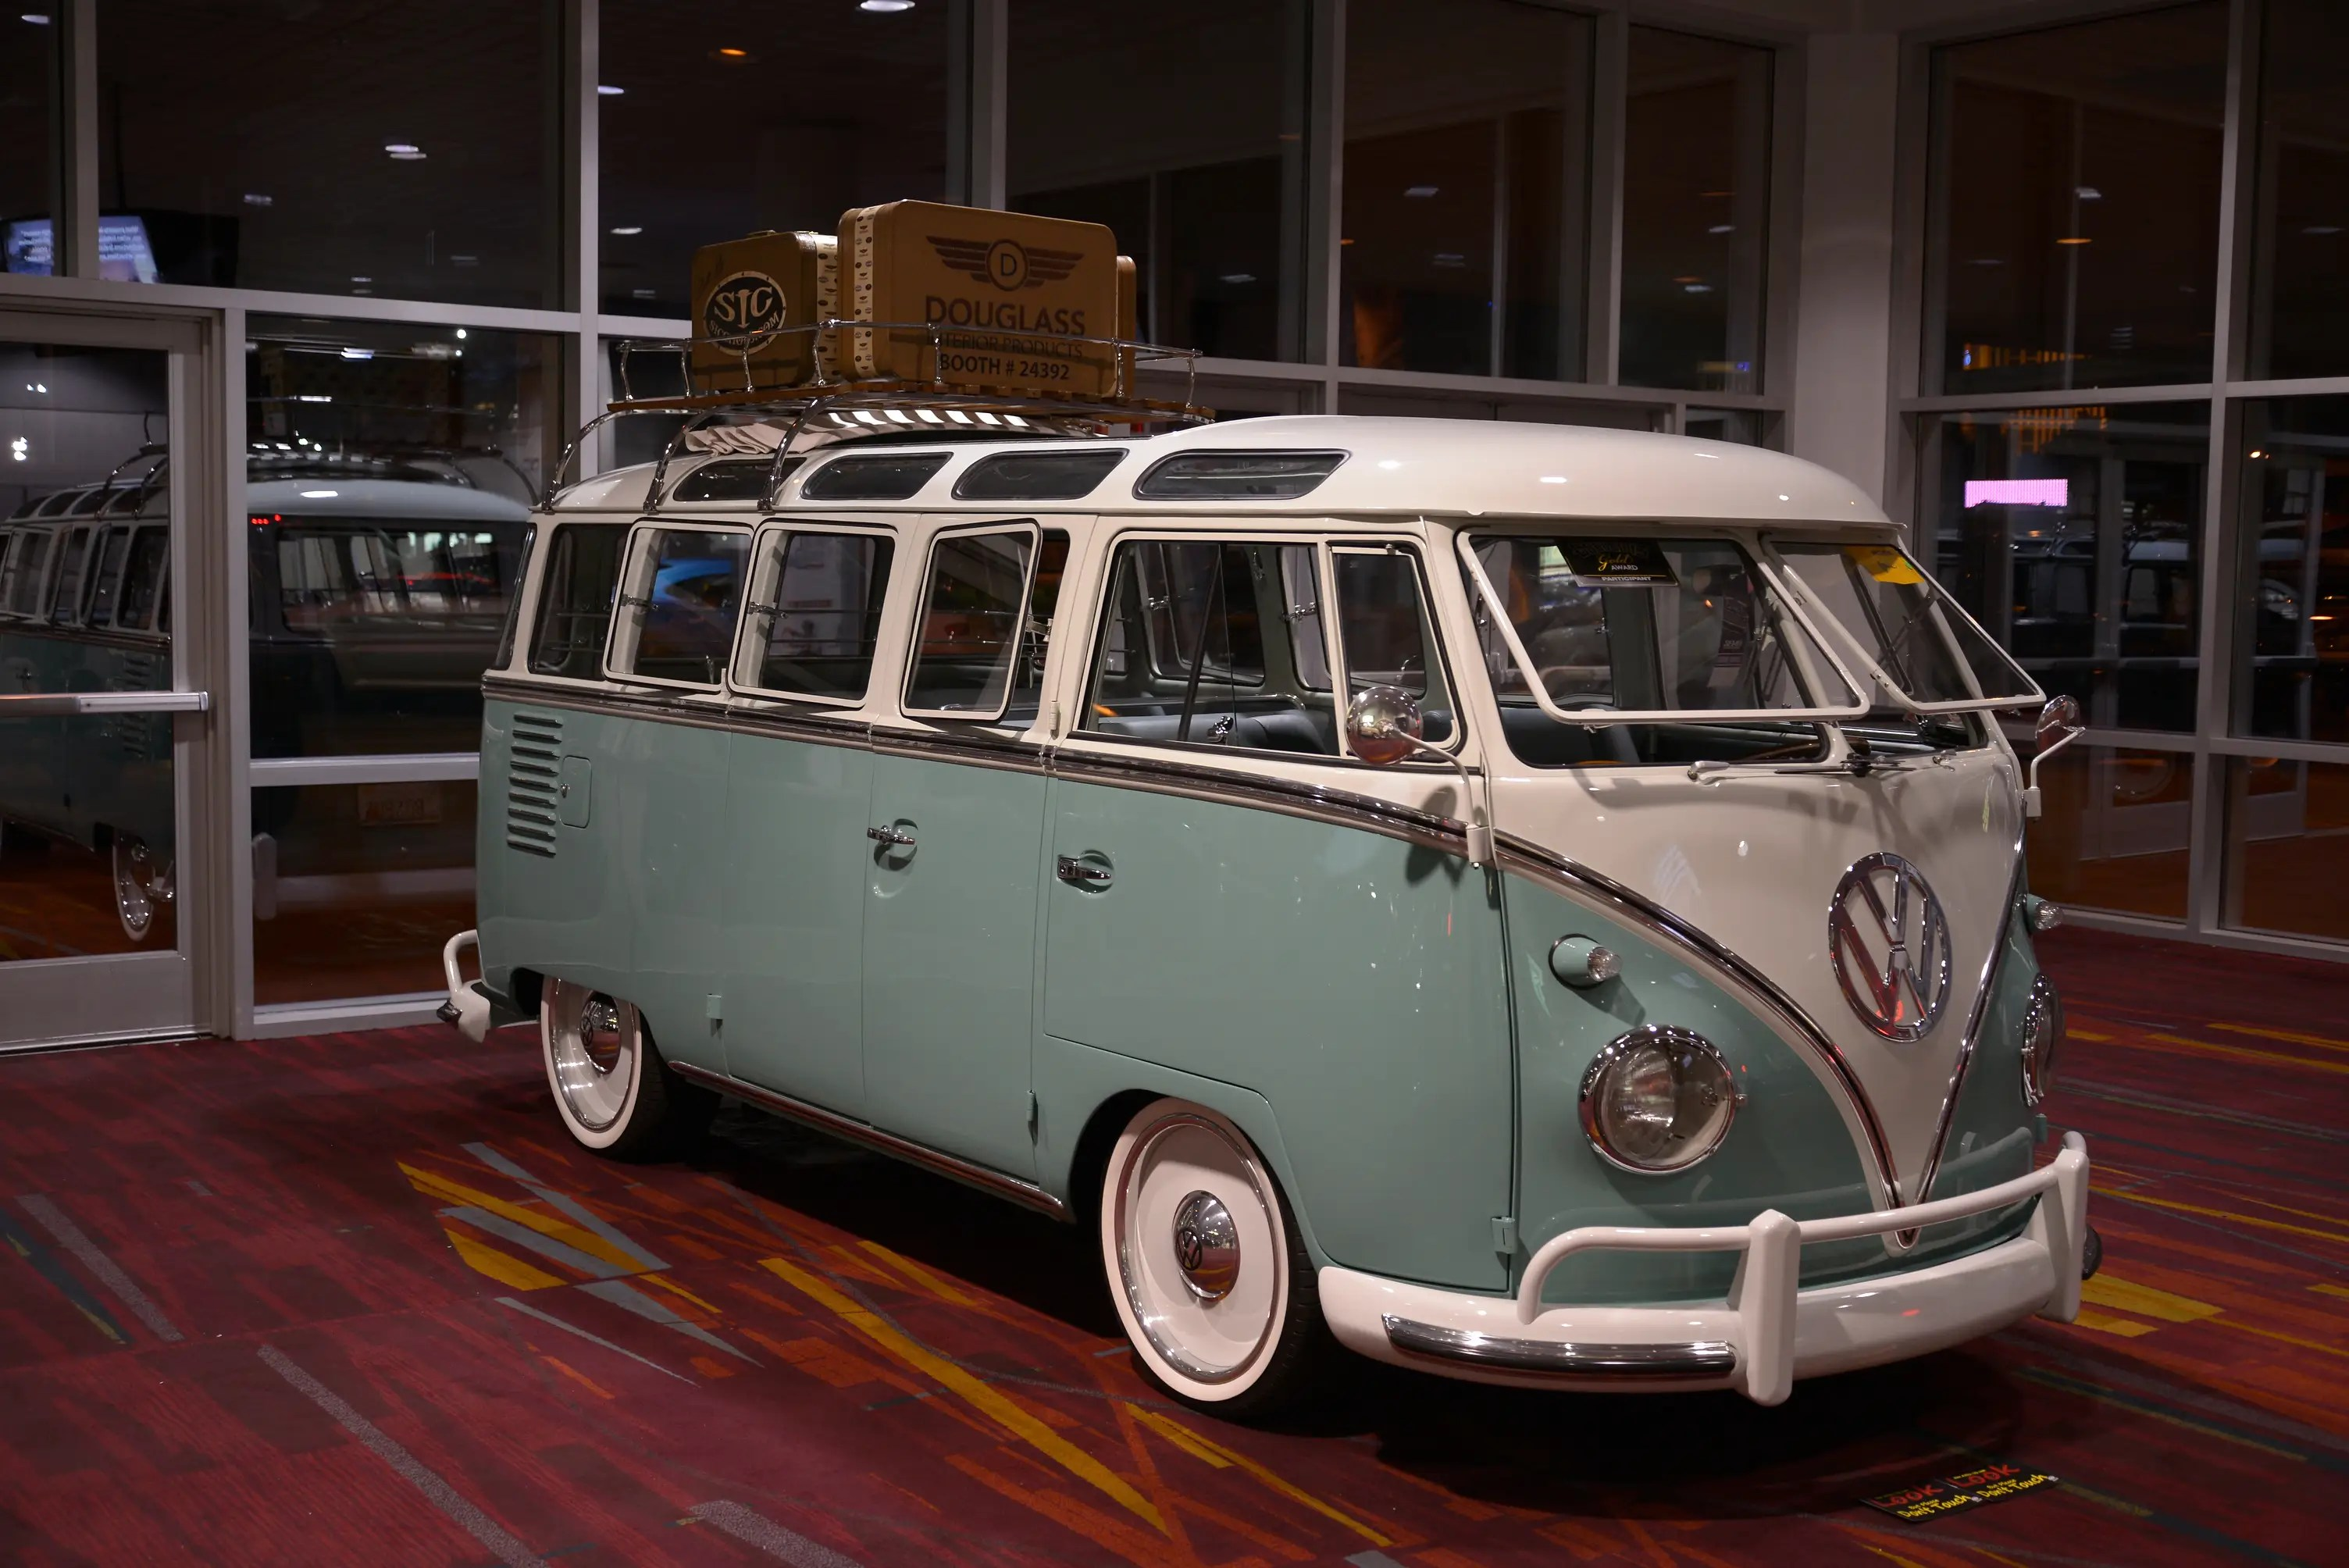 Although this Volkswagen Bus never stopped being cool.